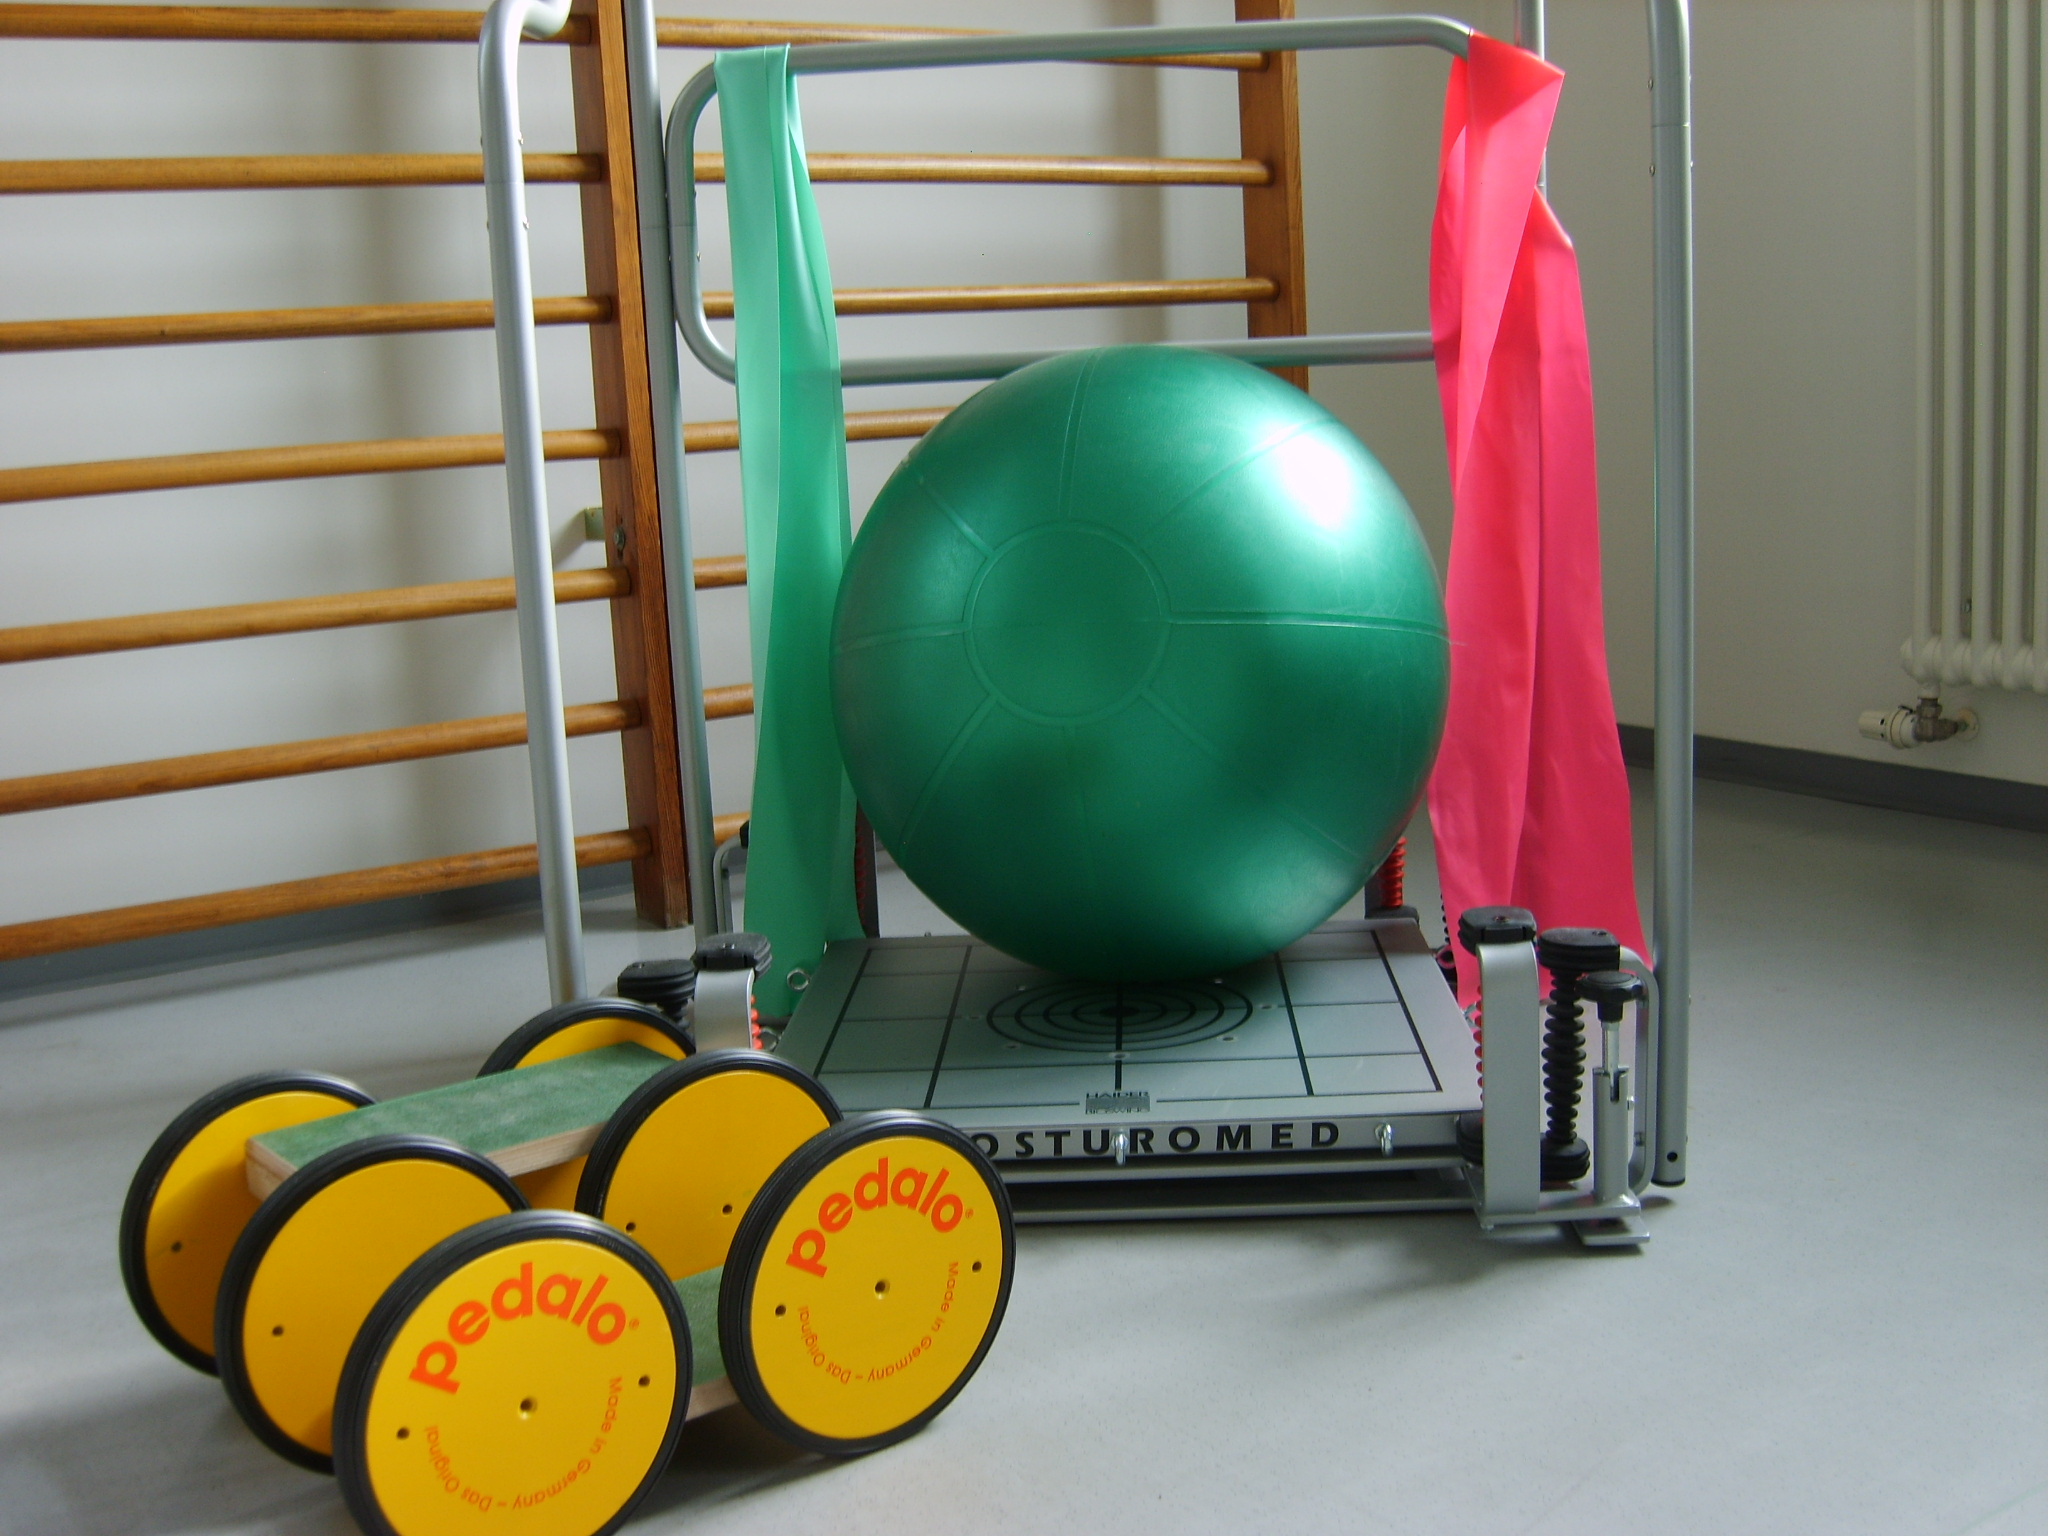 Physiotherapie Ball & andere Geräte